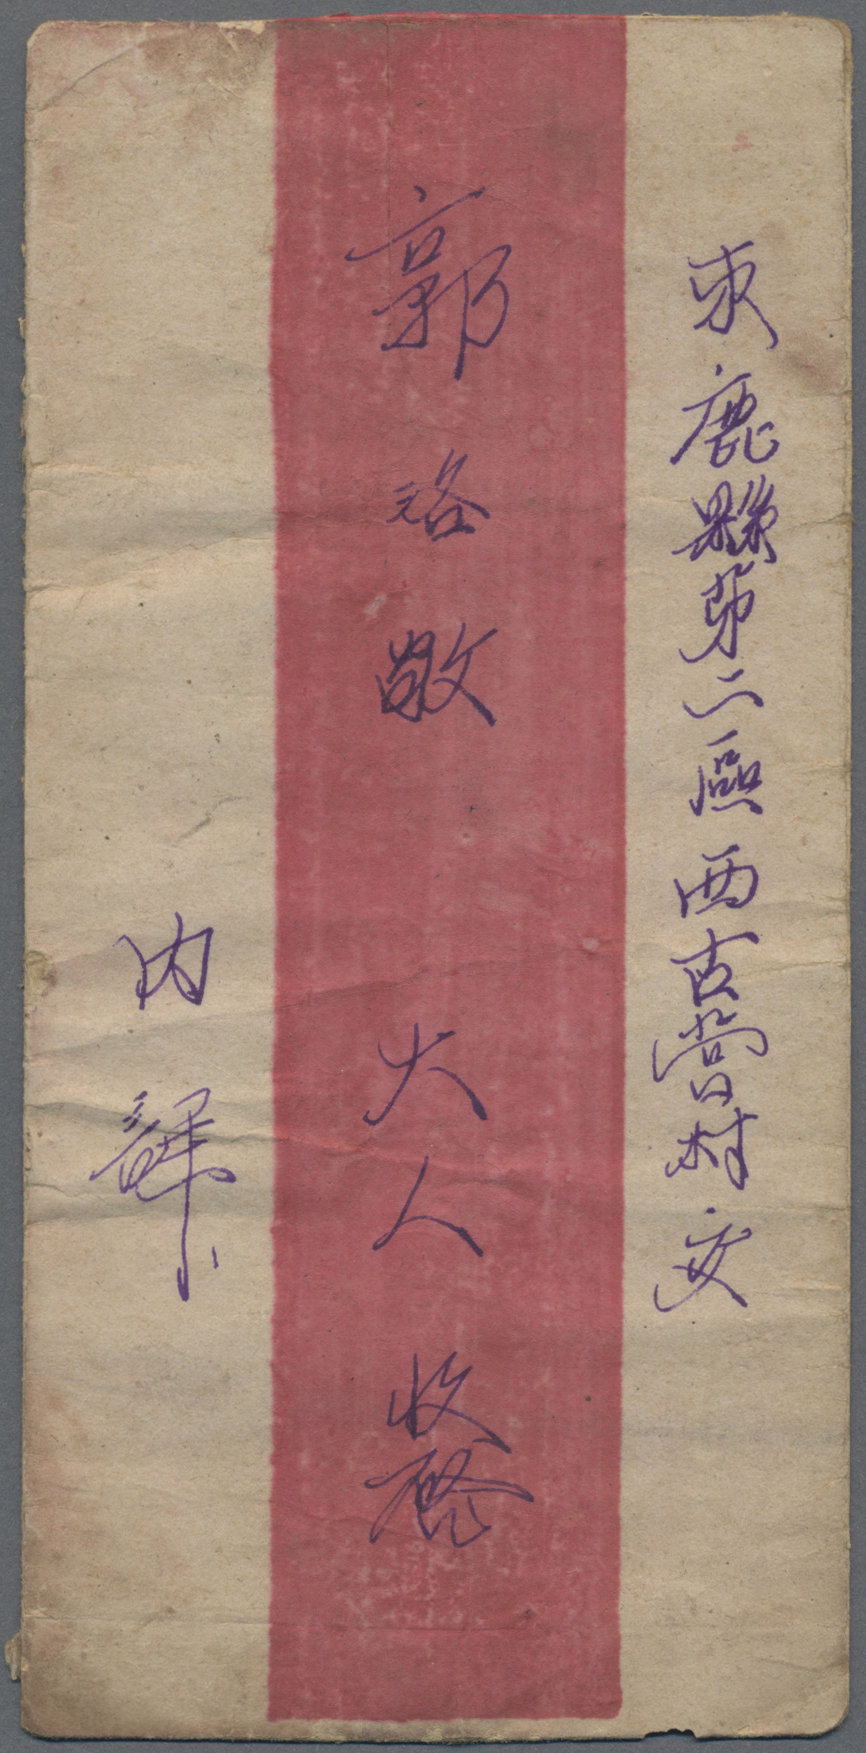 Lot 05006 - China - Volksrepublik - Provinzen  -  Auktionshaus Christoph Gärtner GmbH & Co. KG Sale #46 Special Auction China - including Liberated Areas